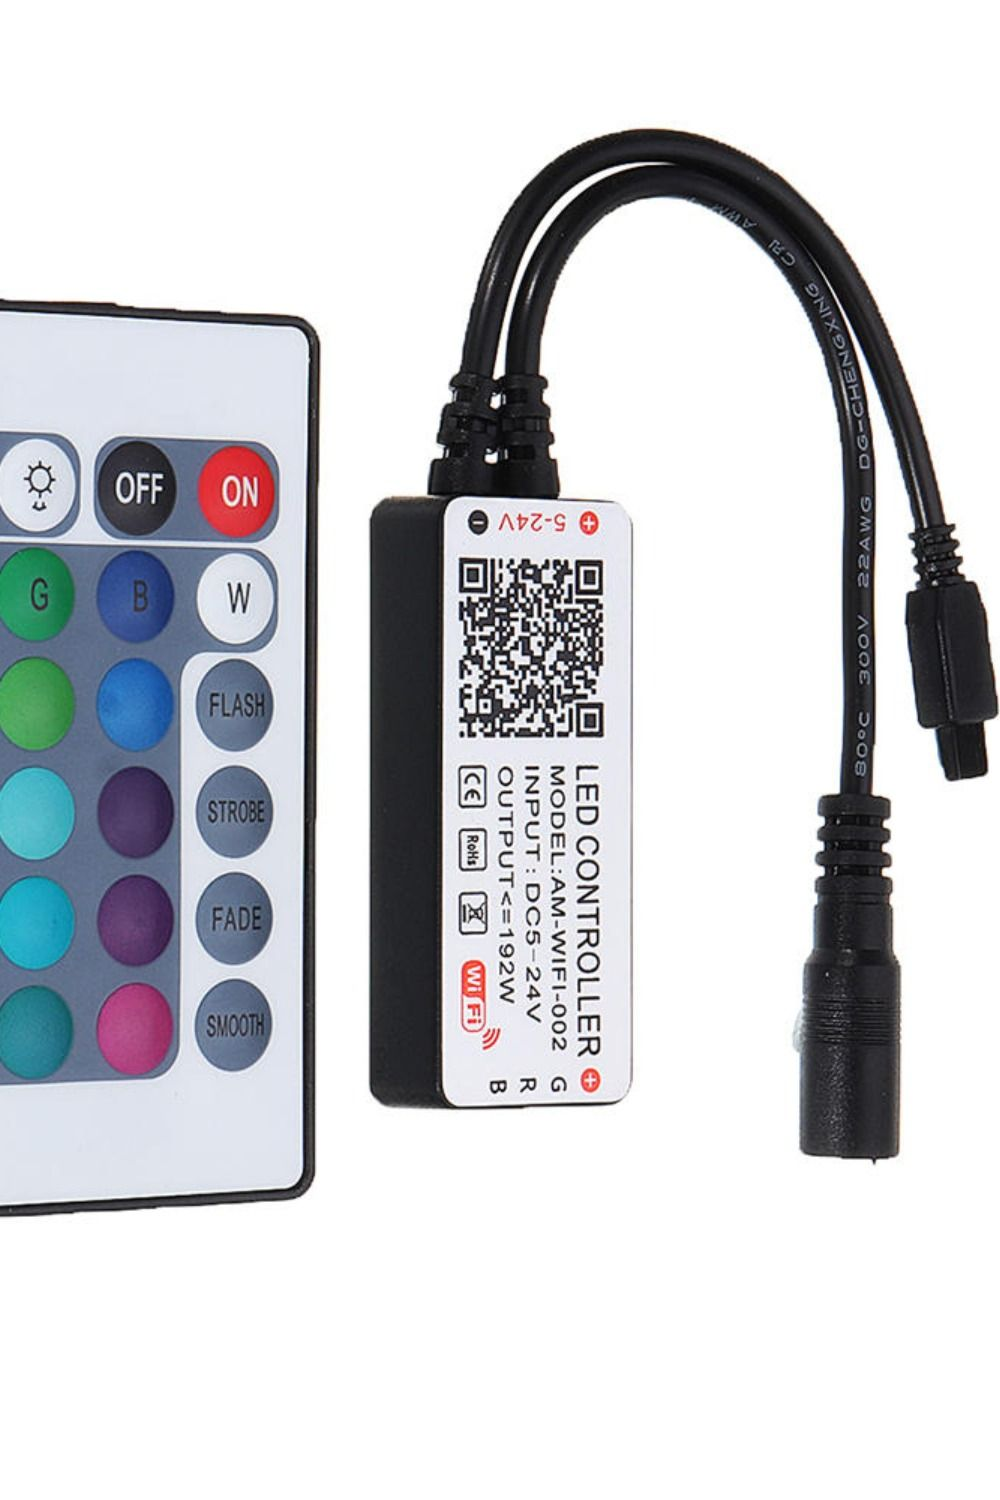 Dc524v wifi smart app music voice control 4pin dimmer